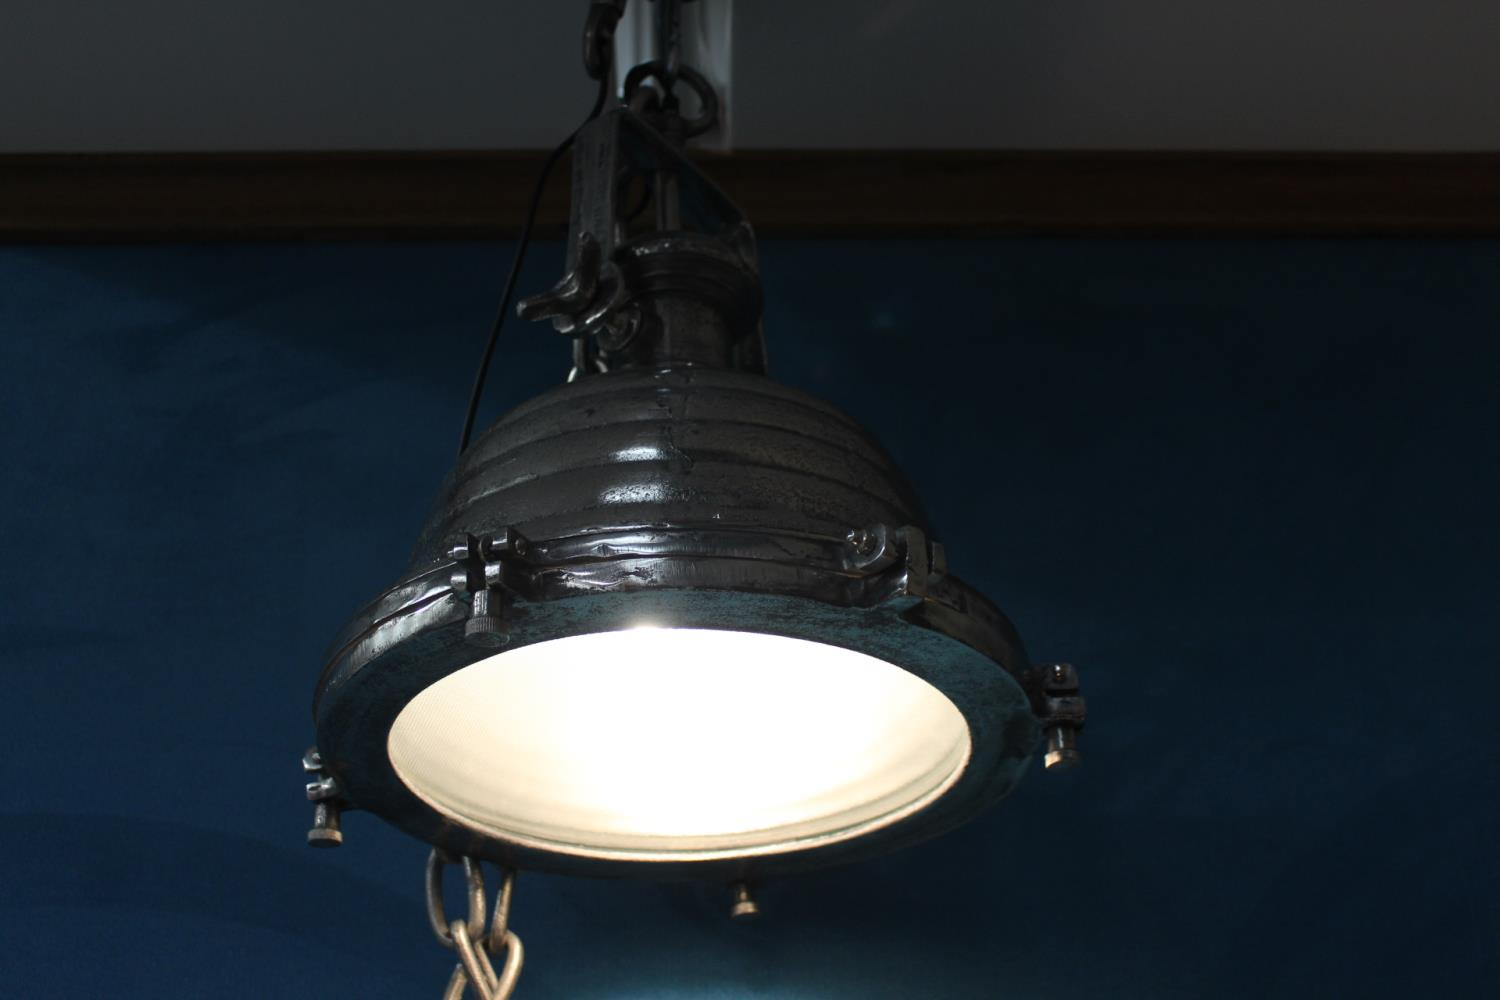 Pair of nickel industrial downlighters - Image 2 of 2